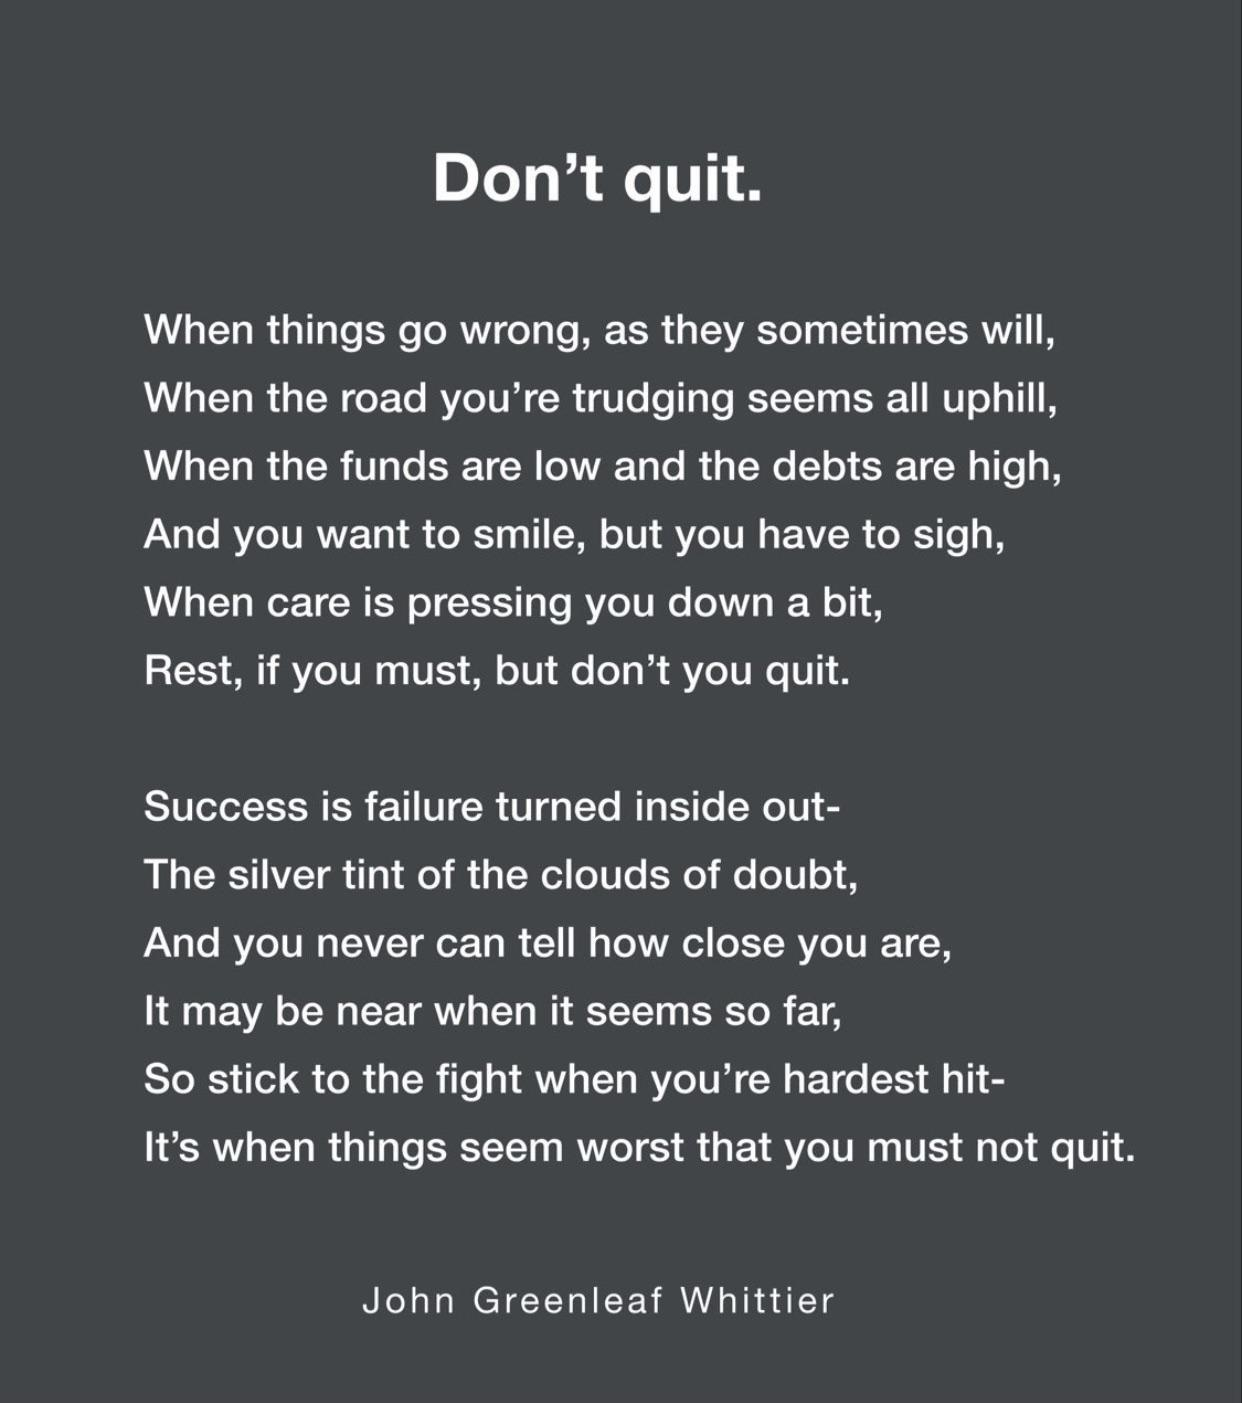 [Image] Learn to rest, not quit